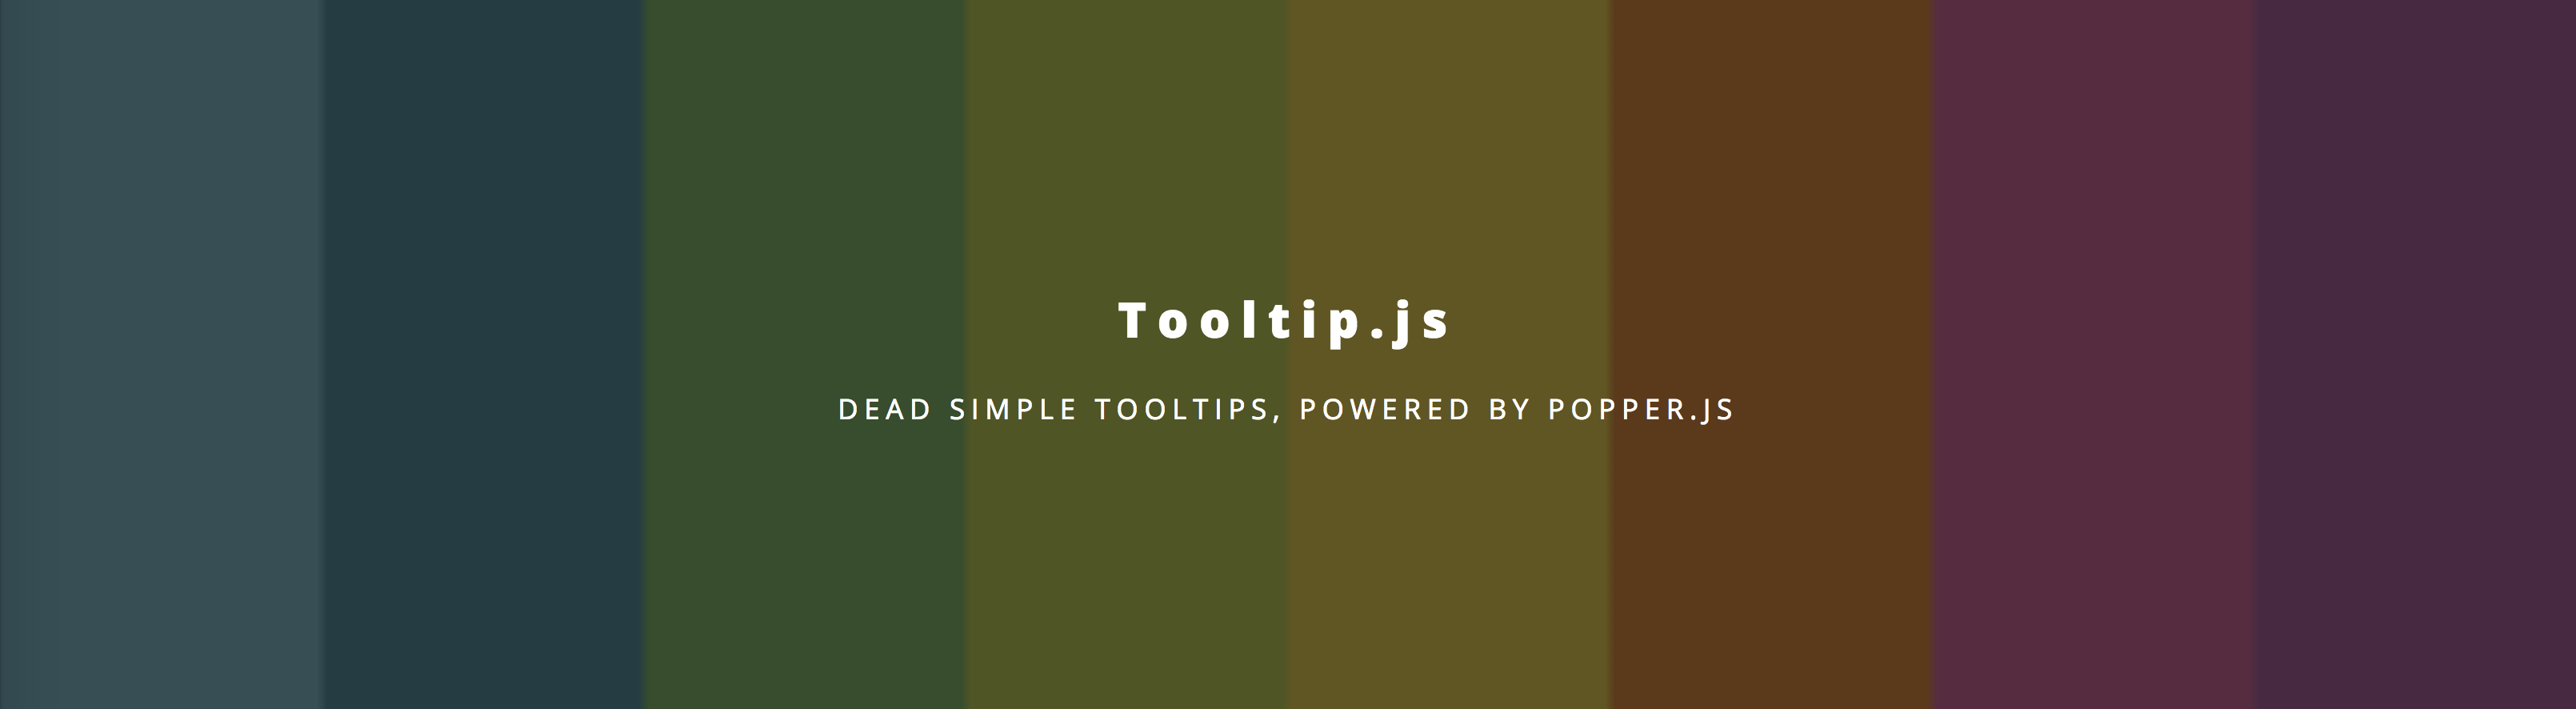 Create beautiful tooltips with Popper js/Tooltip js • matwrites com